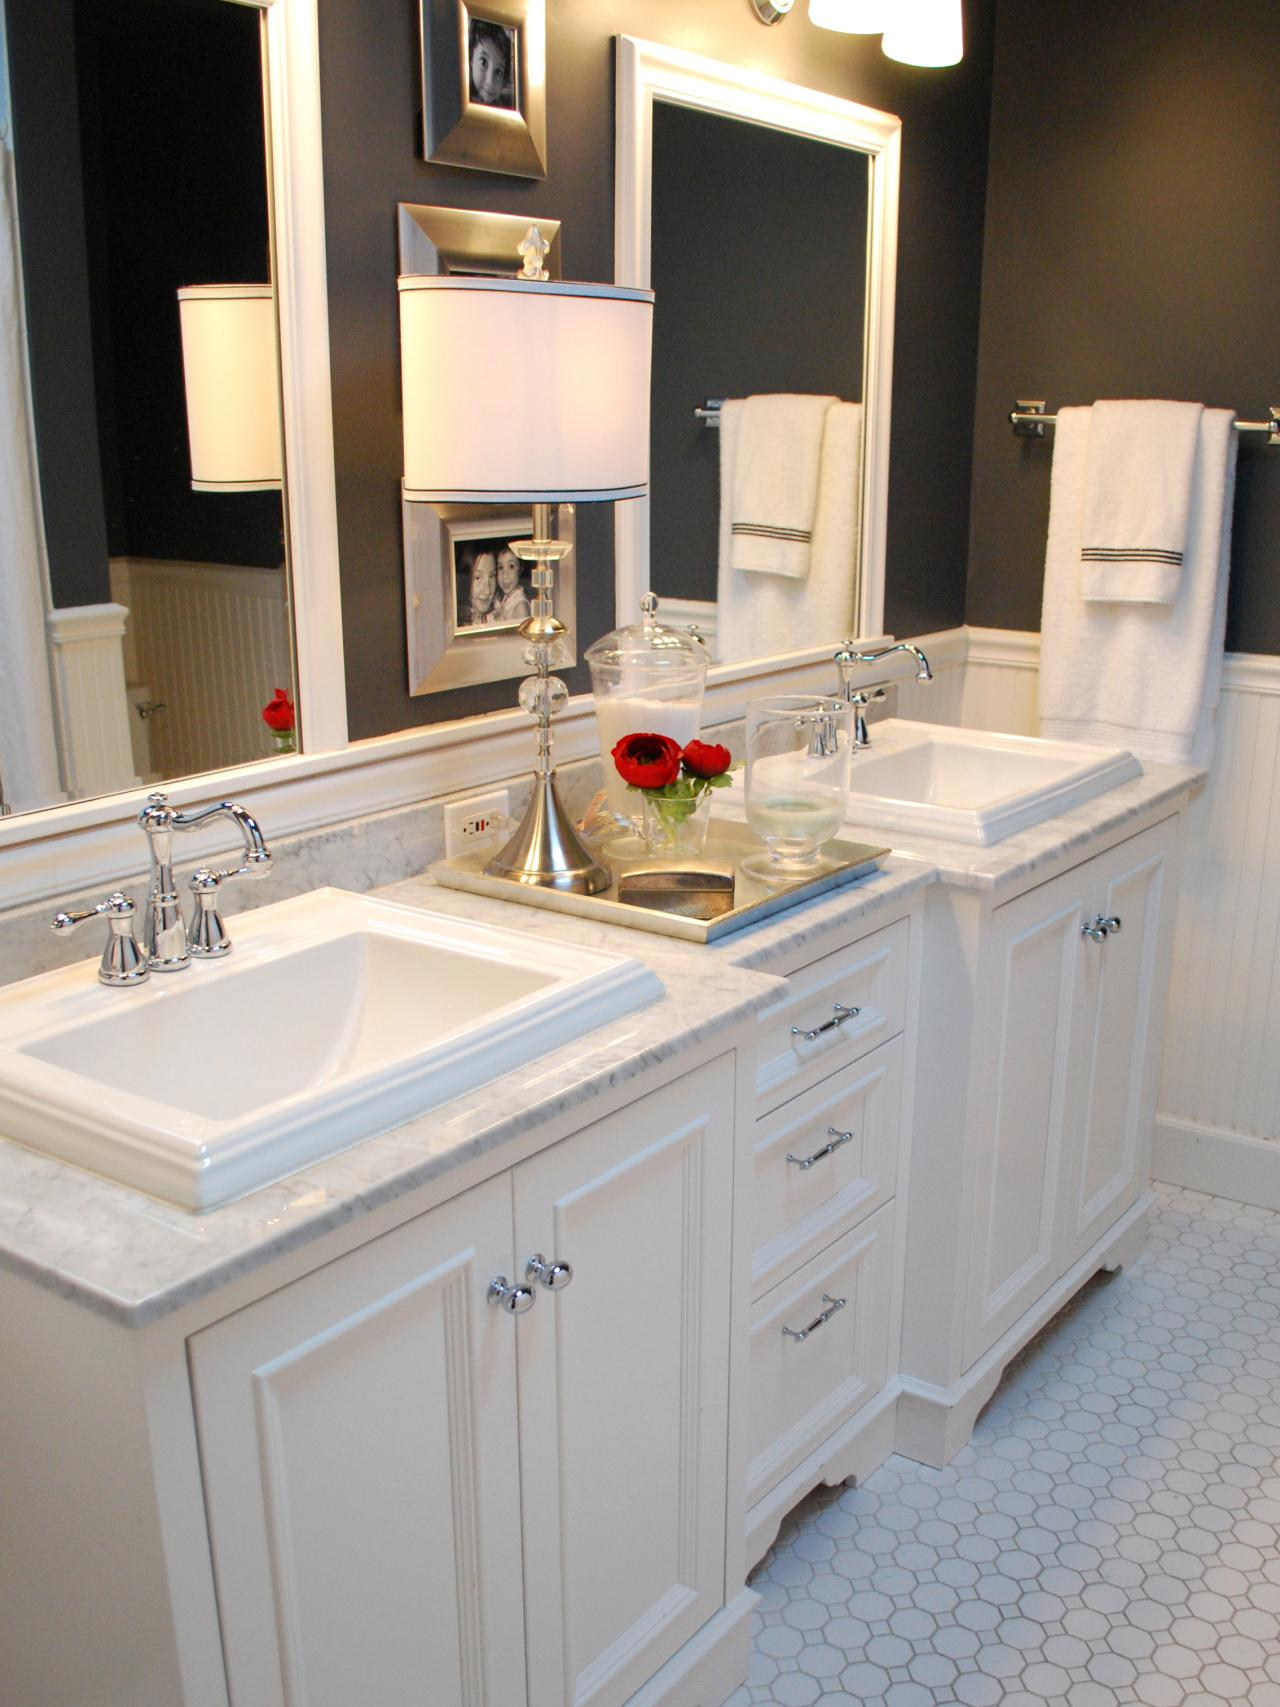 Black and white bathroom designs bathroom ideas for Traditional bathroom ideas photo gallery